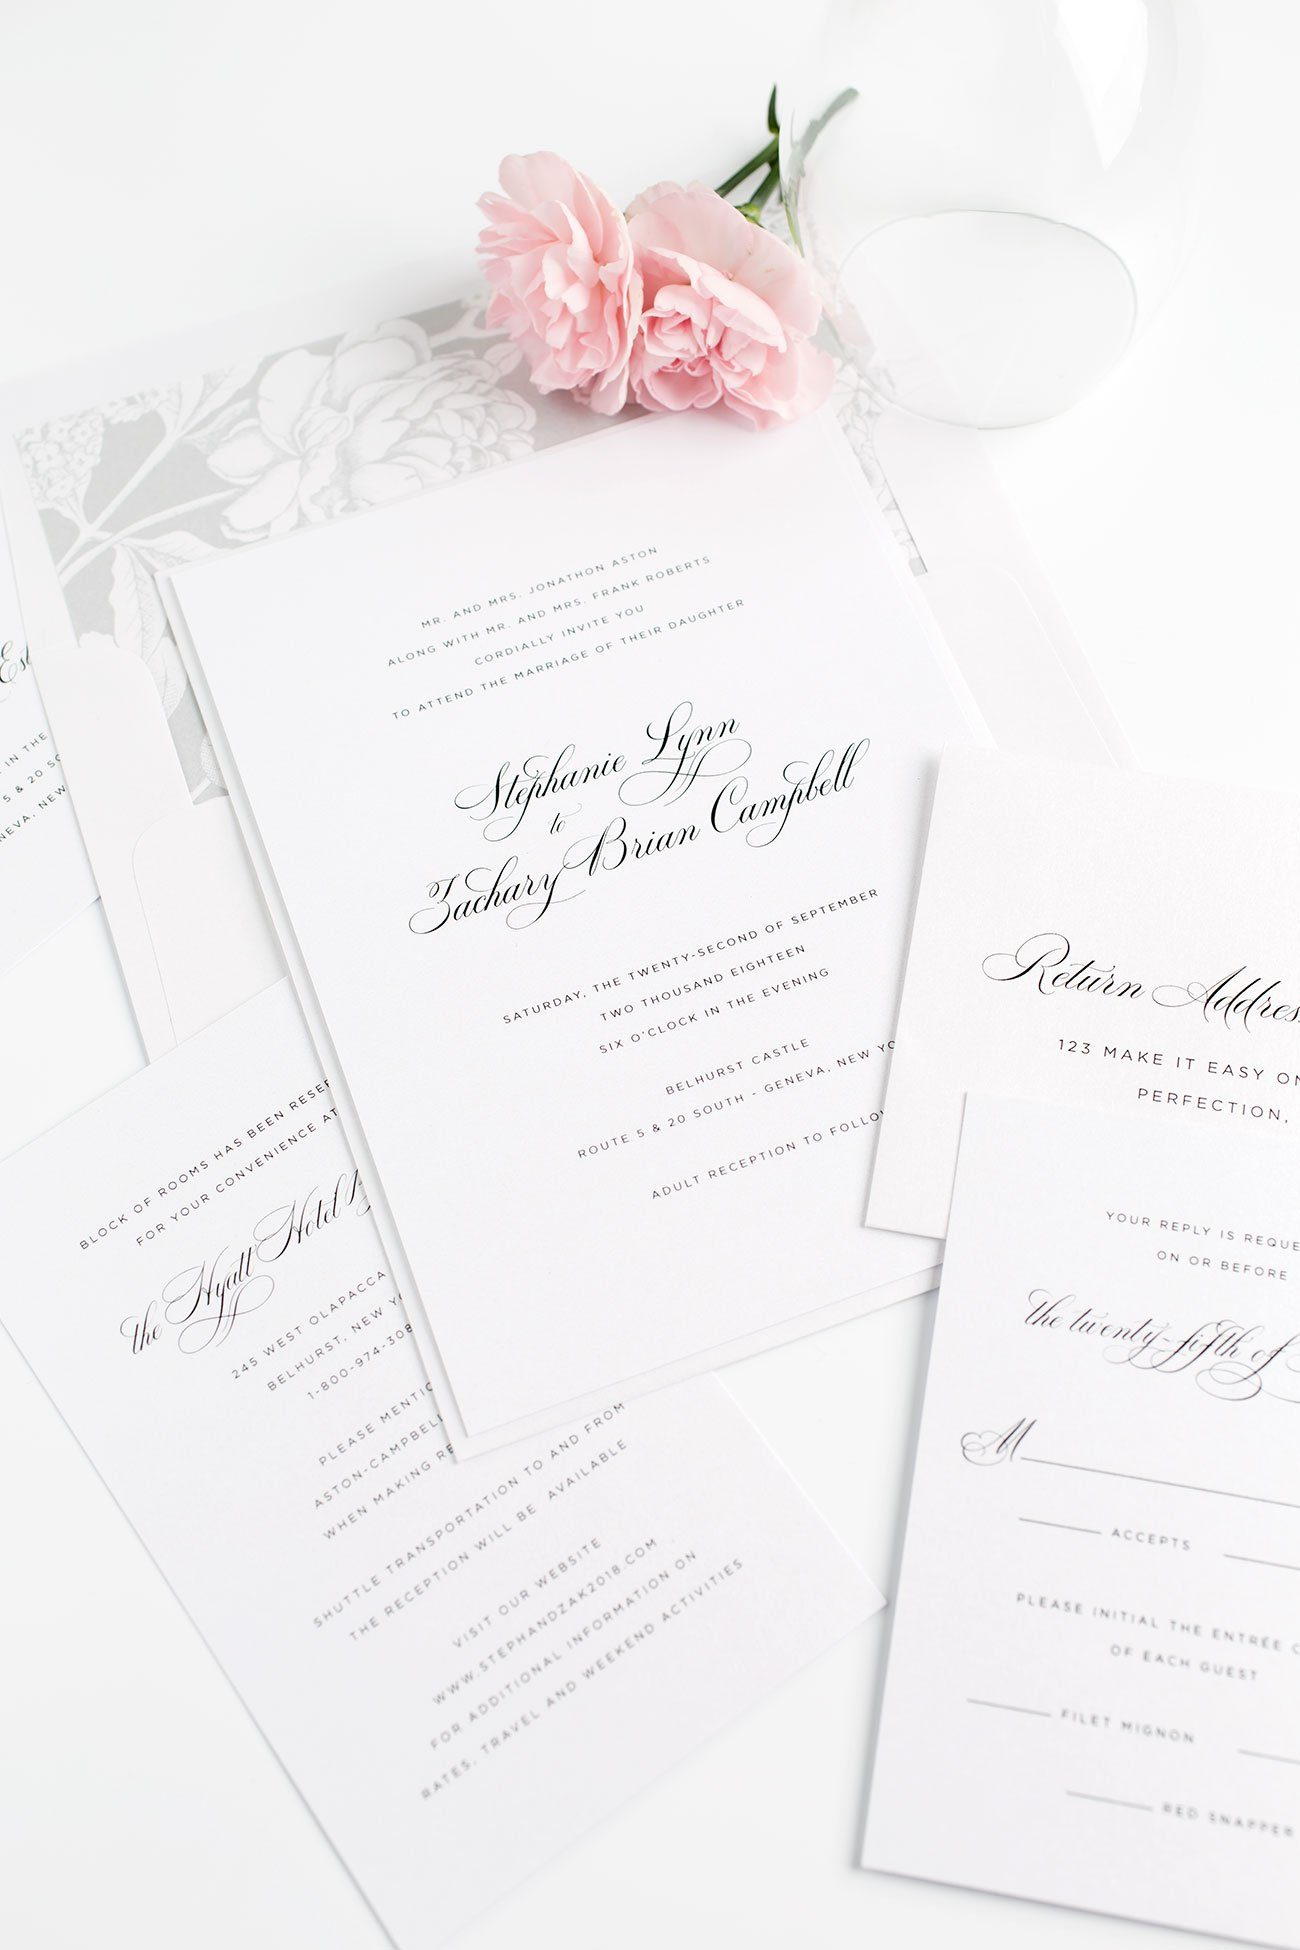 Simple Wedding Invitations in Gray with a Floral Envelope Liner